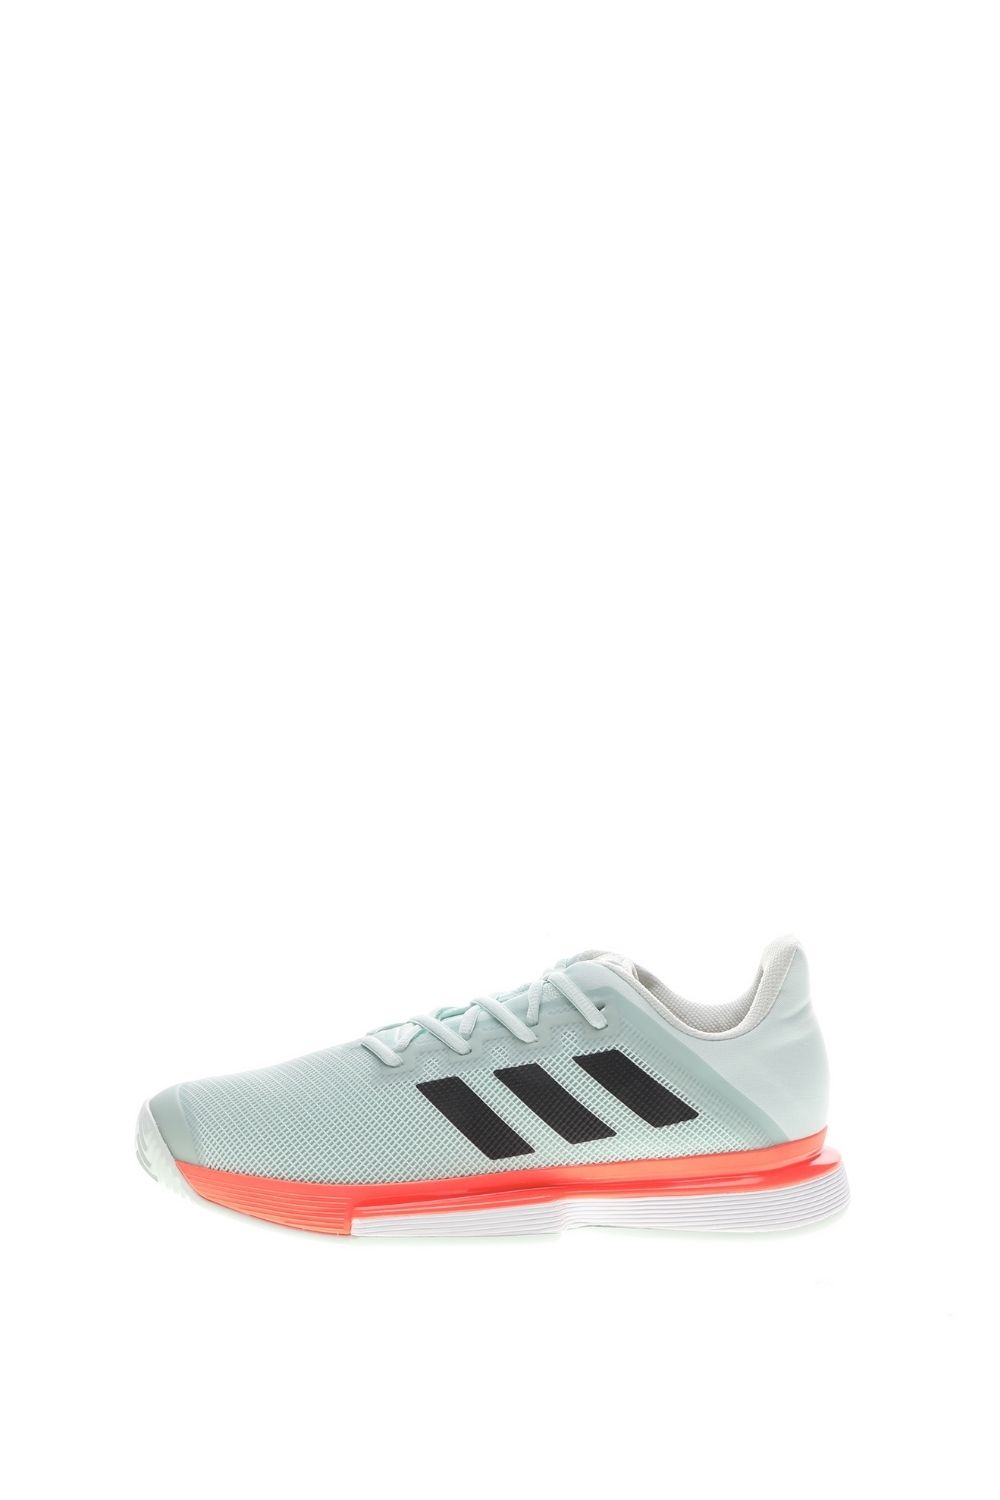 adidas Performance – Ανδρικά παπούτσια tennis adidas Performance SoleMatch Bounce μπλε